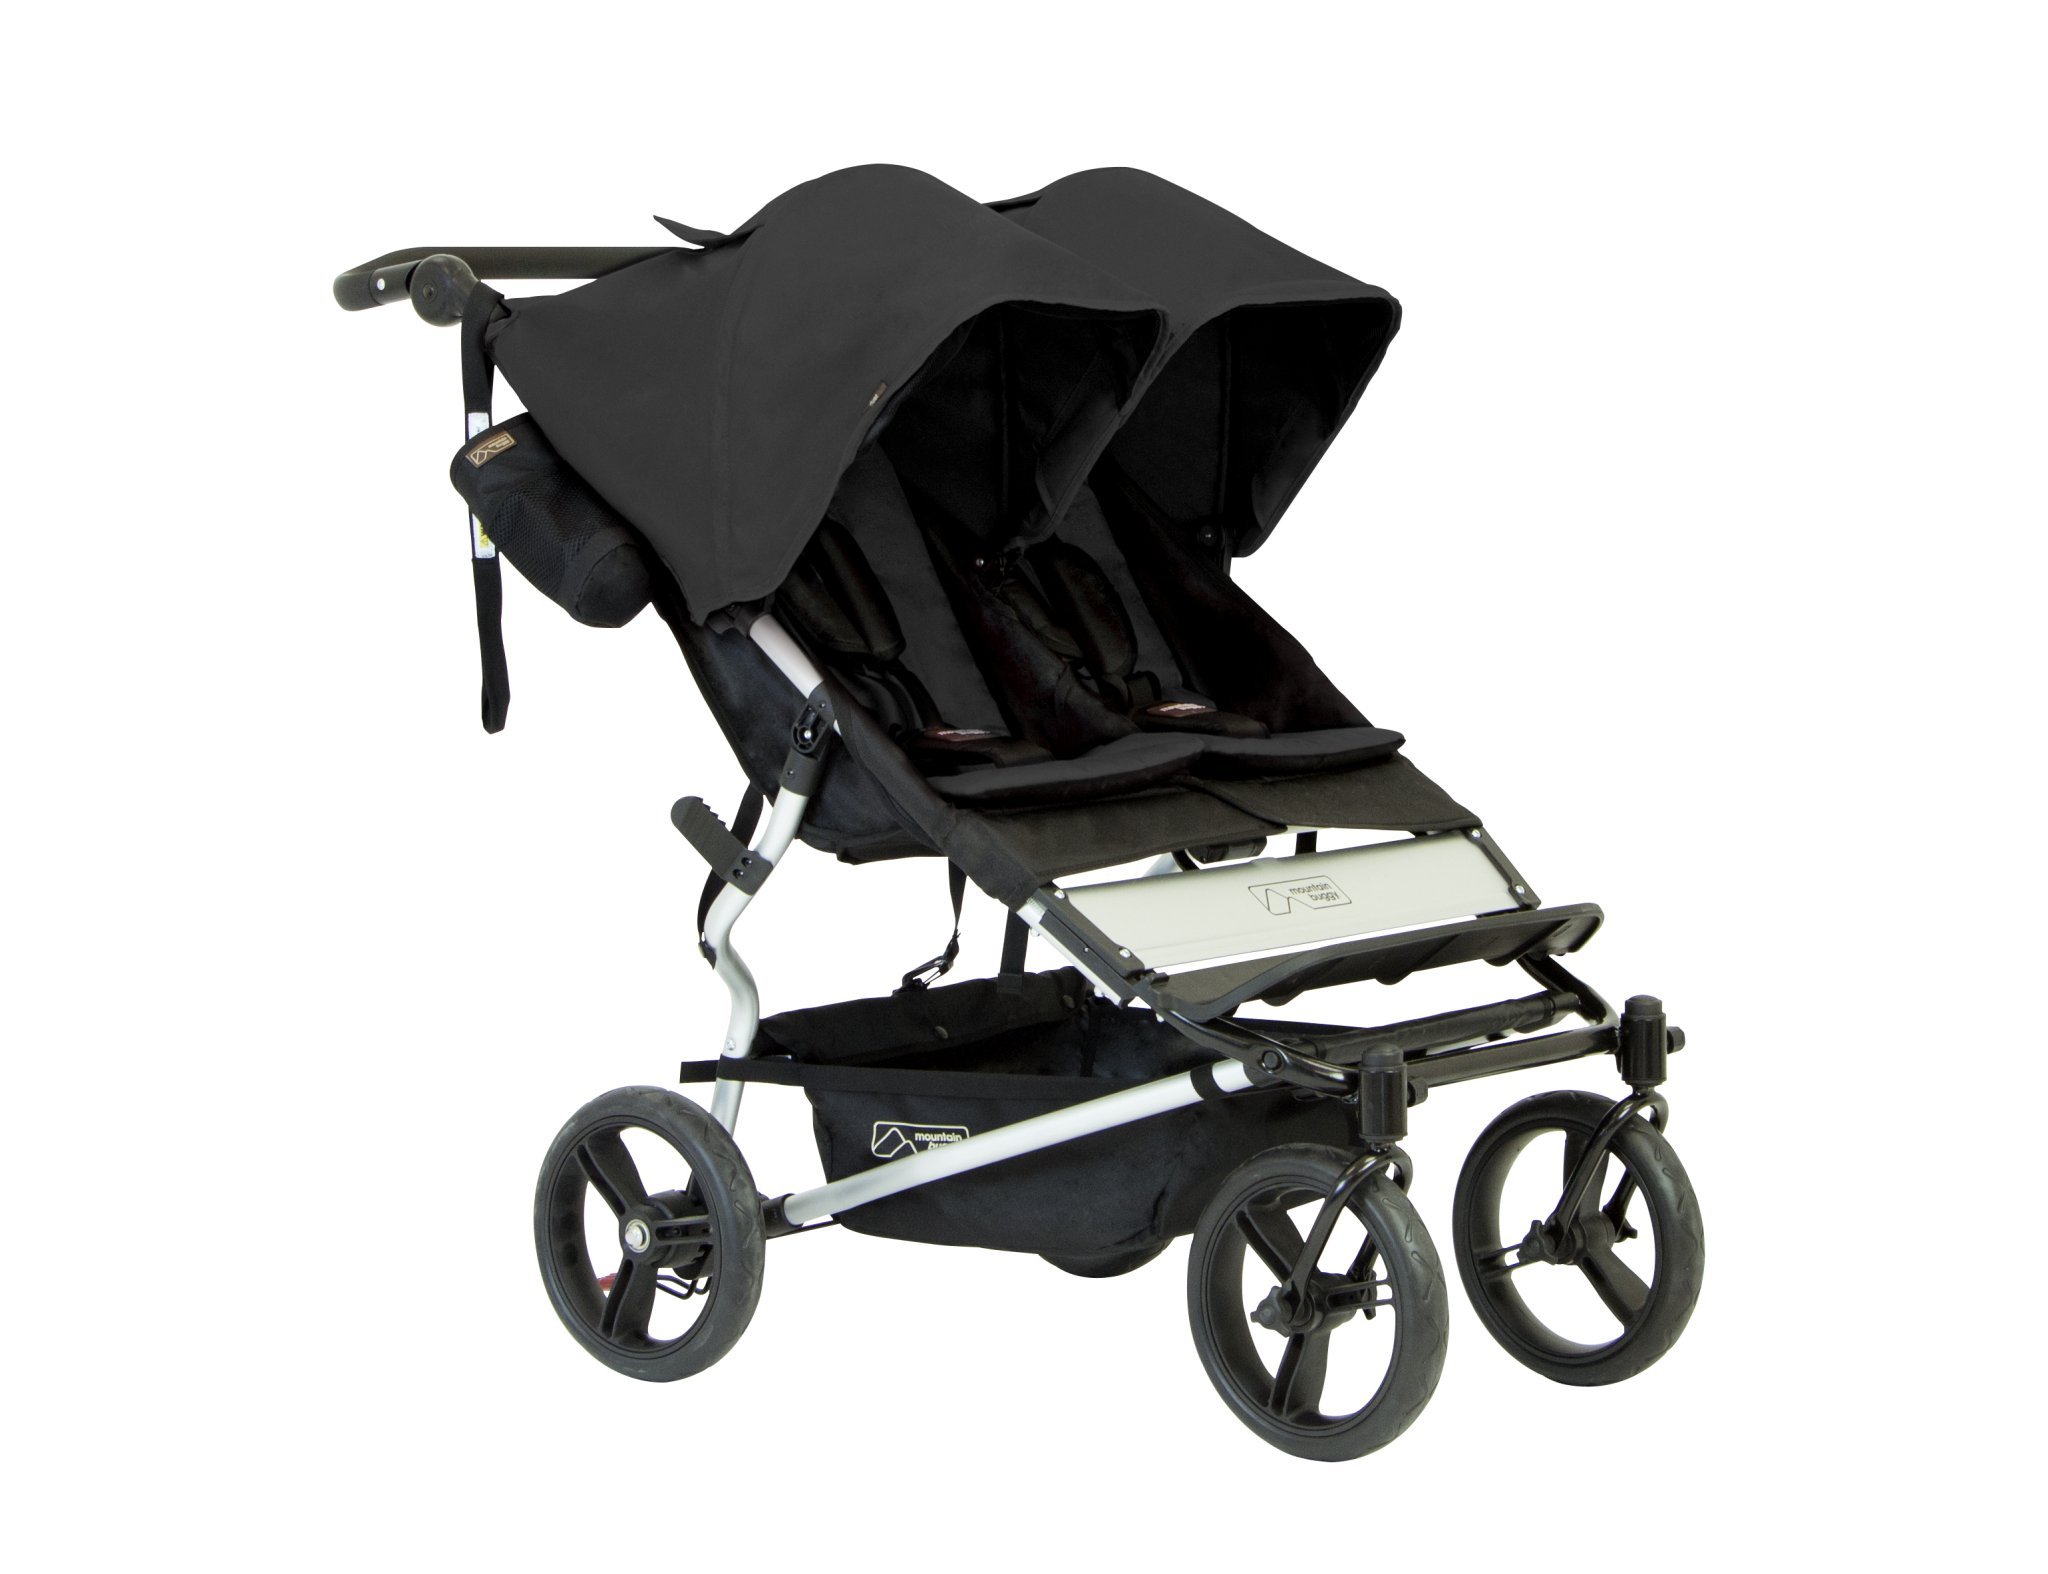 Mountain Buggy Duet 2016 Double Stroller, Black by Mountain Buggy (Image #1)